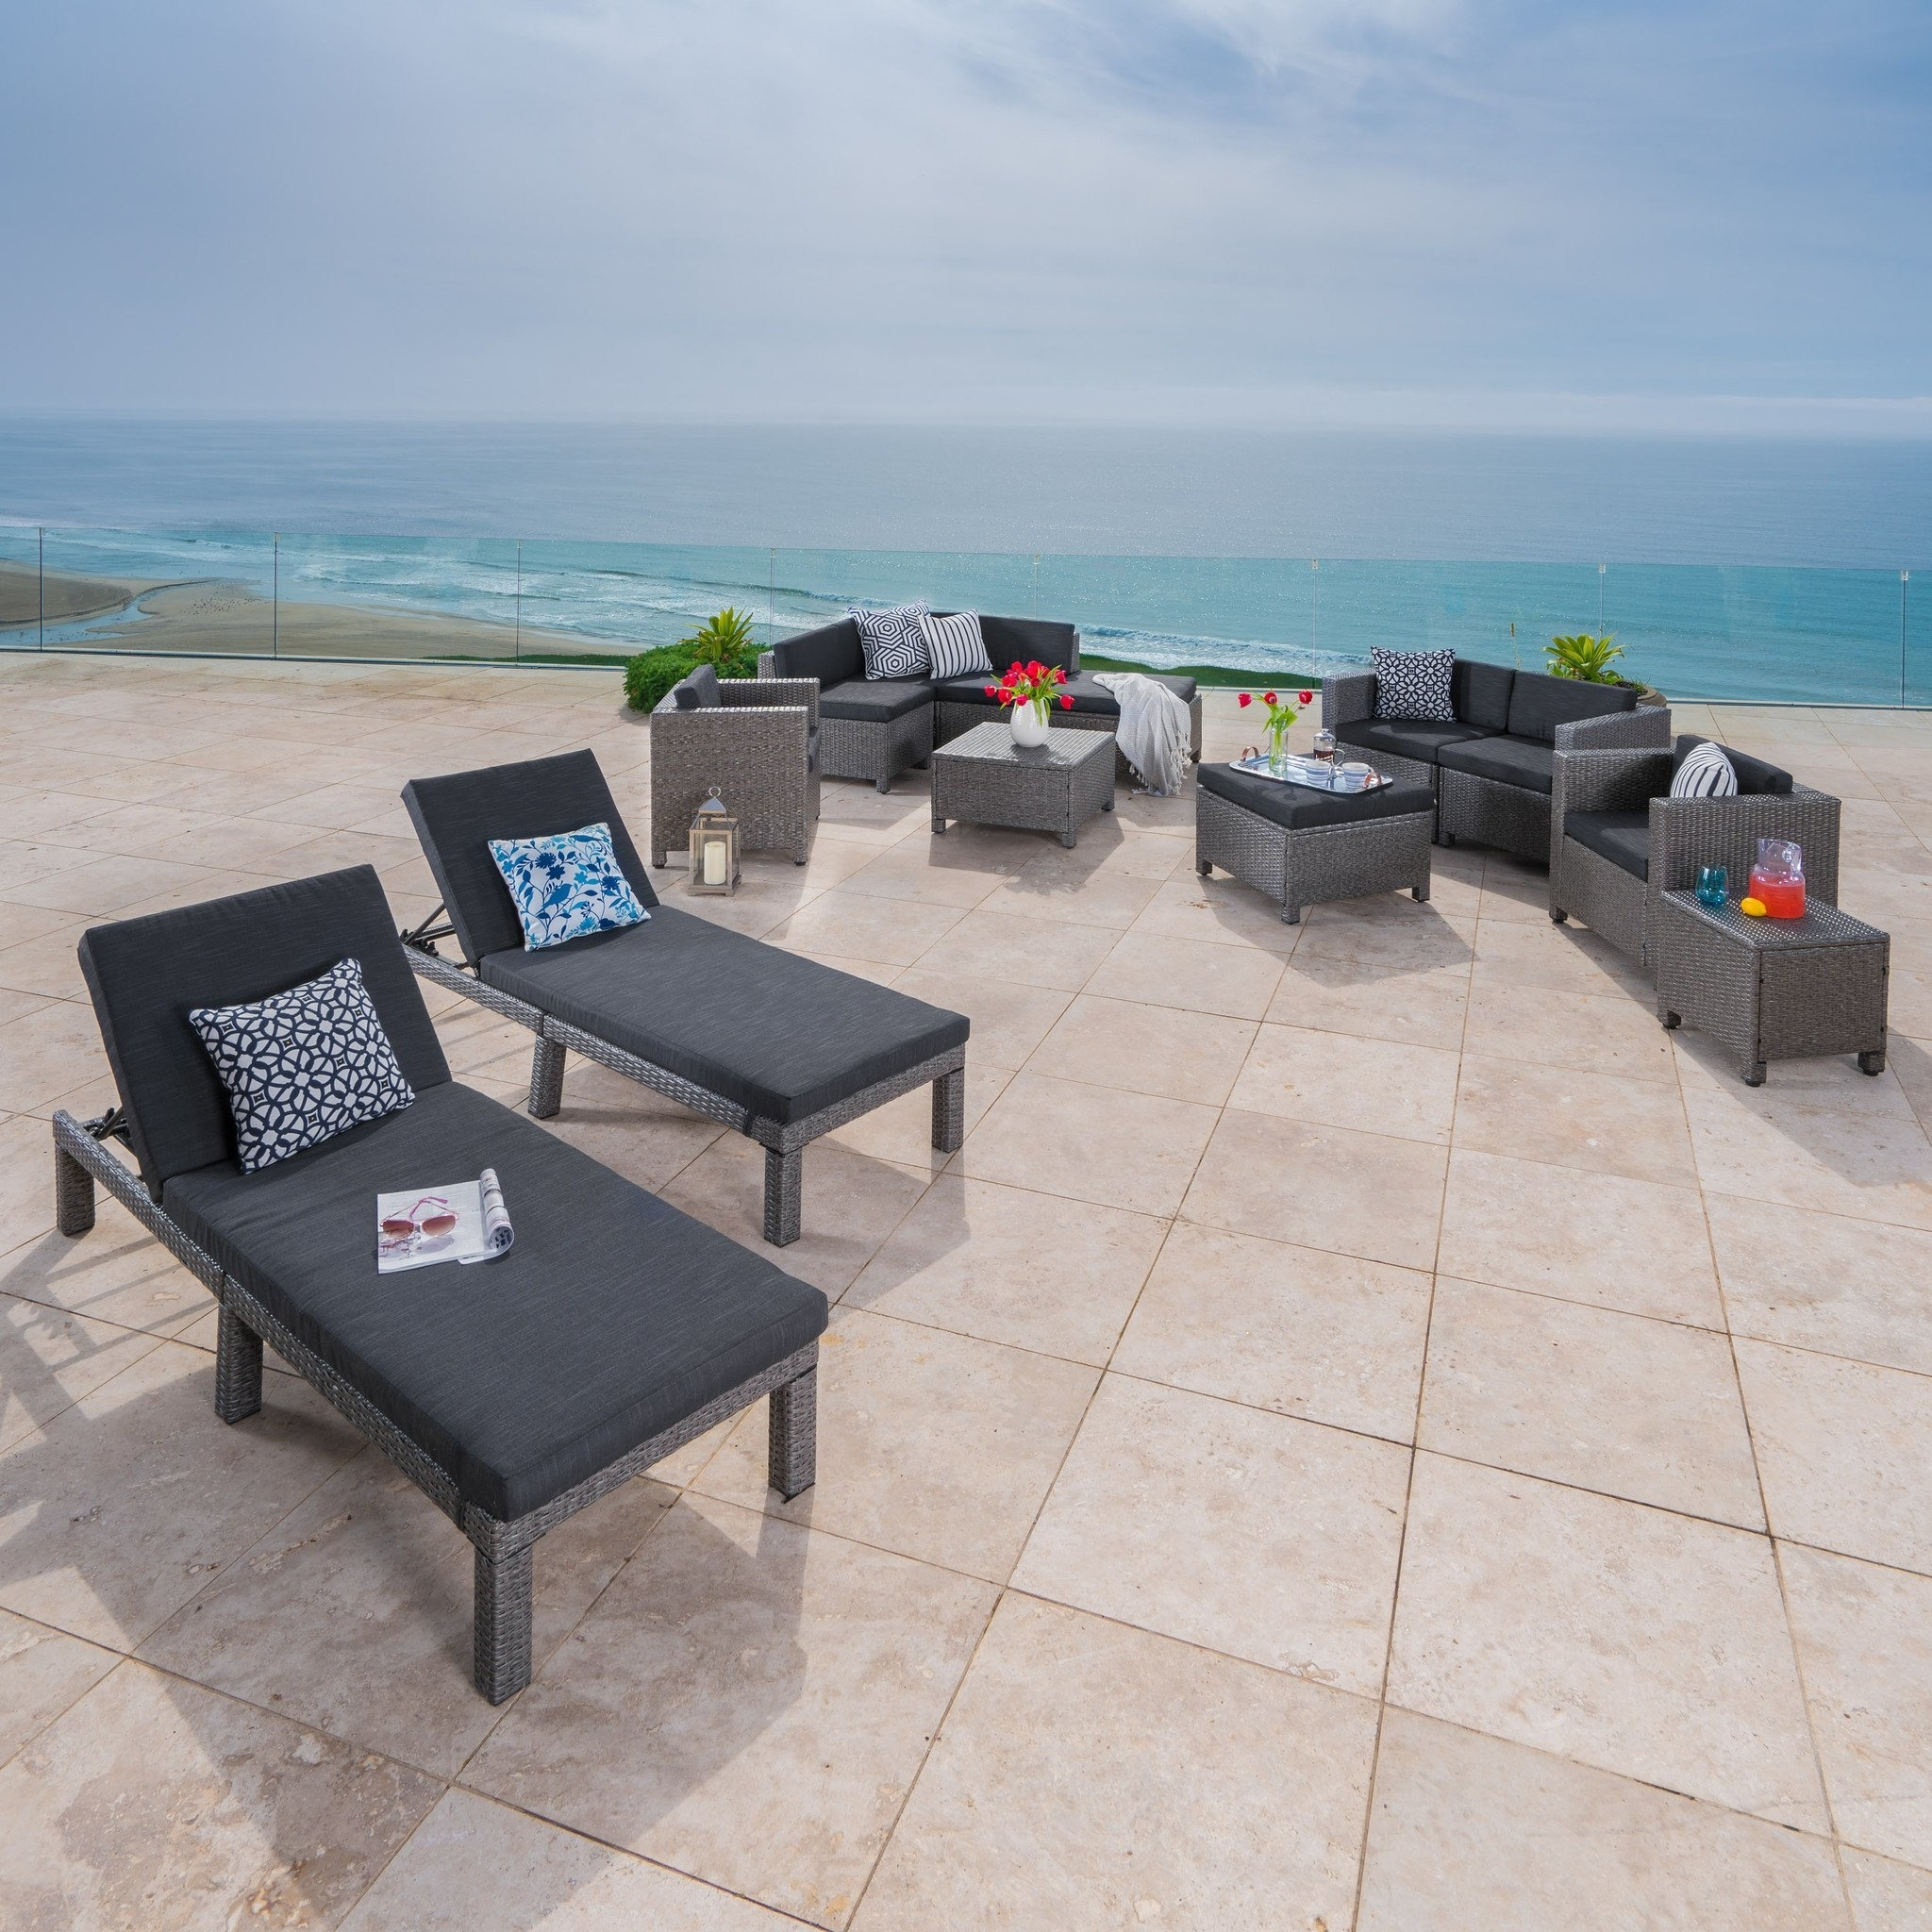 Phillips Outdoor 13 Pc Wicker Patio Set w/Water Resistant Cushions